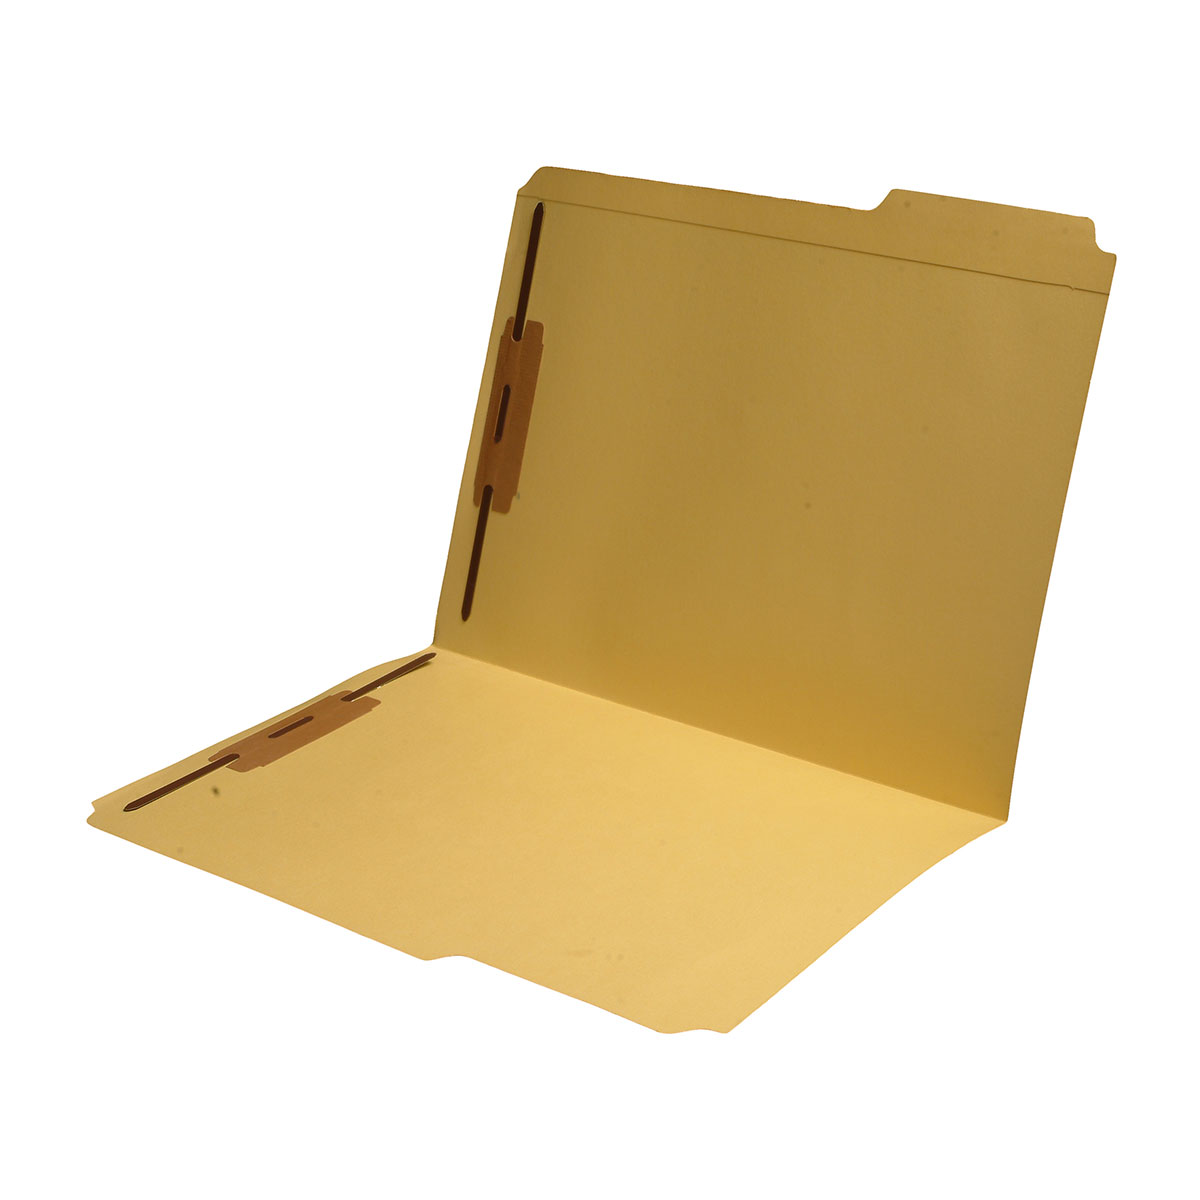 S-9042-YLW - 11 pt Yellow Folders, 1/3 Cut Reinforced Top Tab - Assorted, Letter Size, Fastener Pos #1 and #3 (Box of 50)